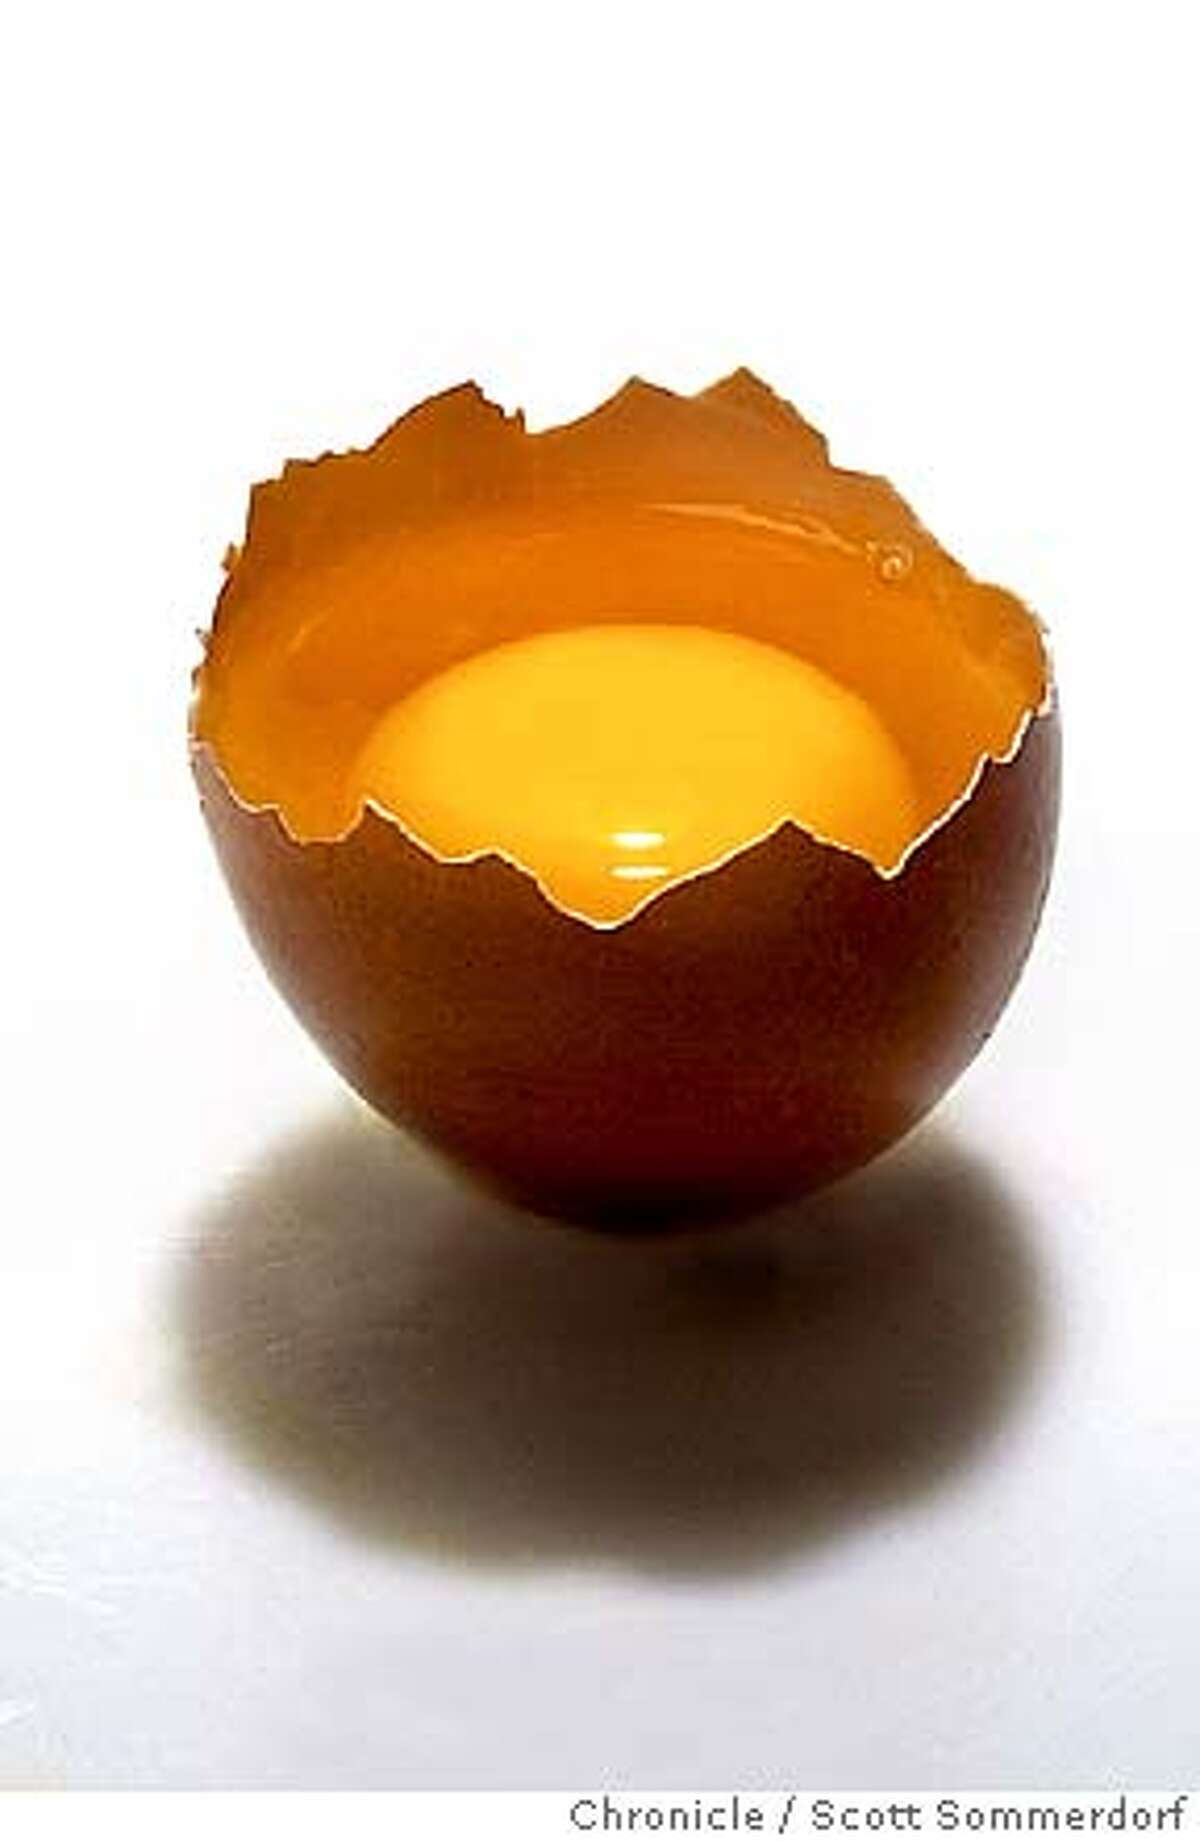 LEAD shot of a simple brown egg - broken with yolk visible, and lit nicely inside. This will be cut out and used (along with a little shadow) on the front of FOOD for the egg story. Gloria Orbegozo will be there to help style. SCOTT SOMMERDORF/THE CHRONICLE